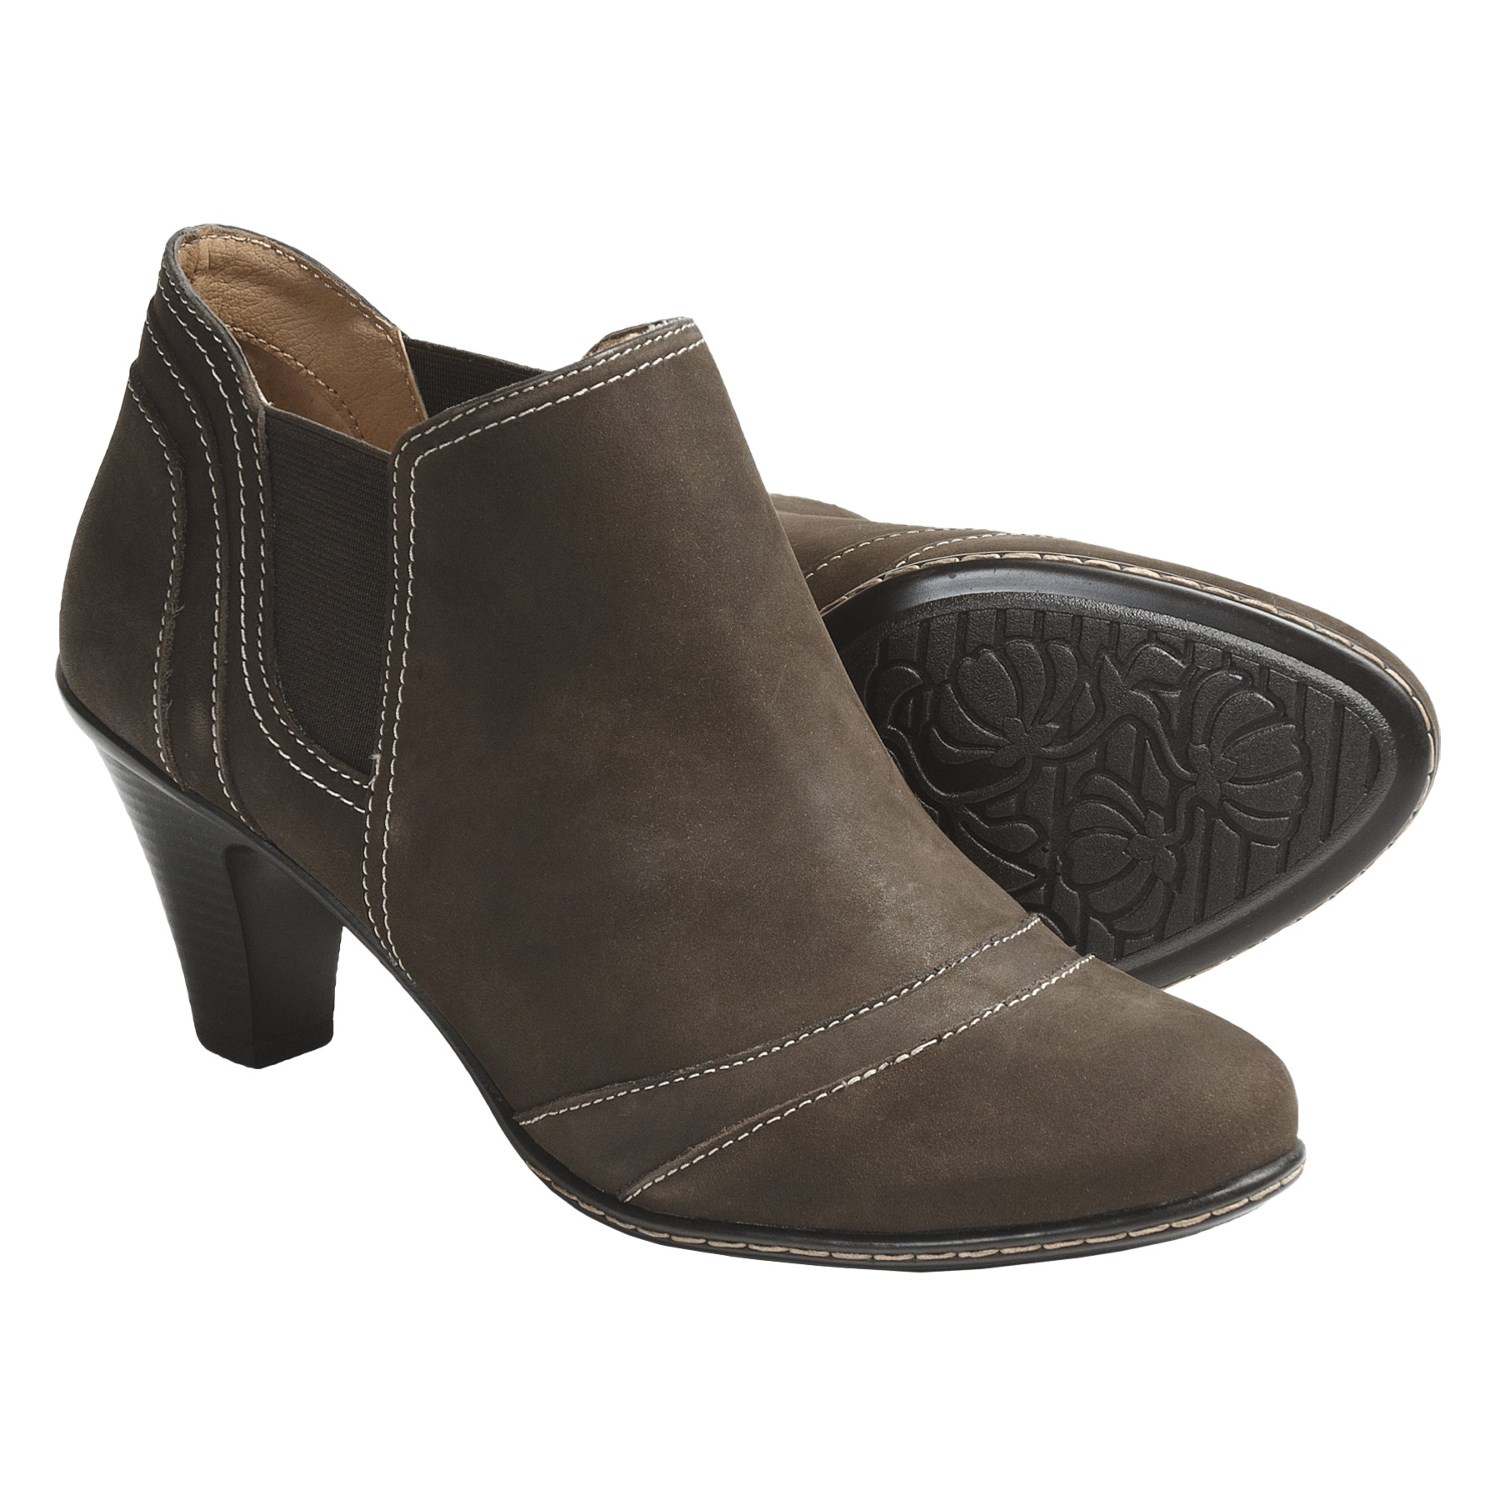 softspots sookie ankle boots leather for save 35